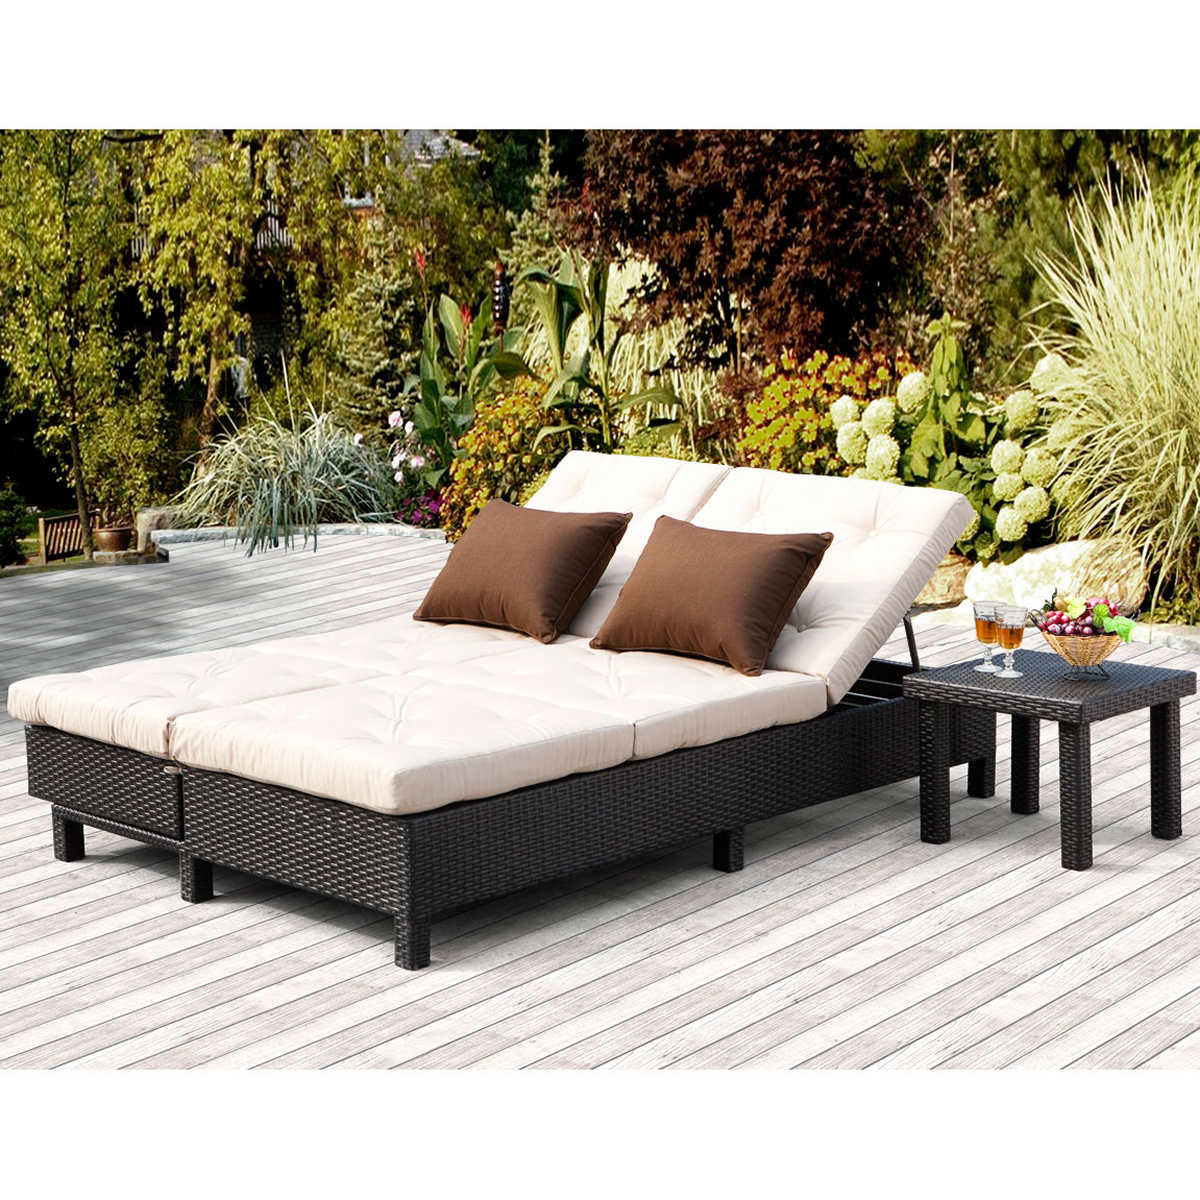 Outdoor chaise lounge costco kirkland signature for Agio wicker chaise lounge